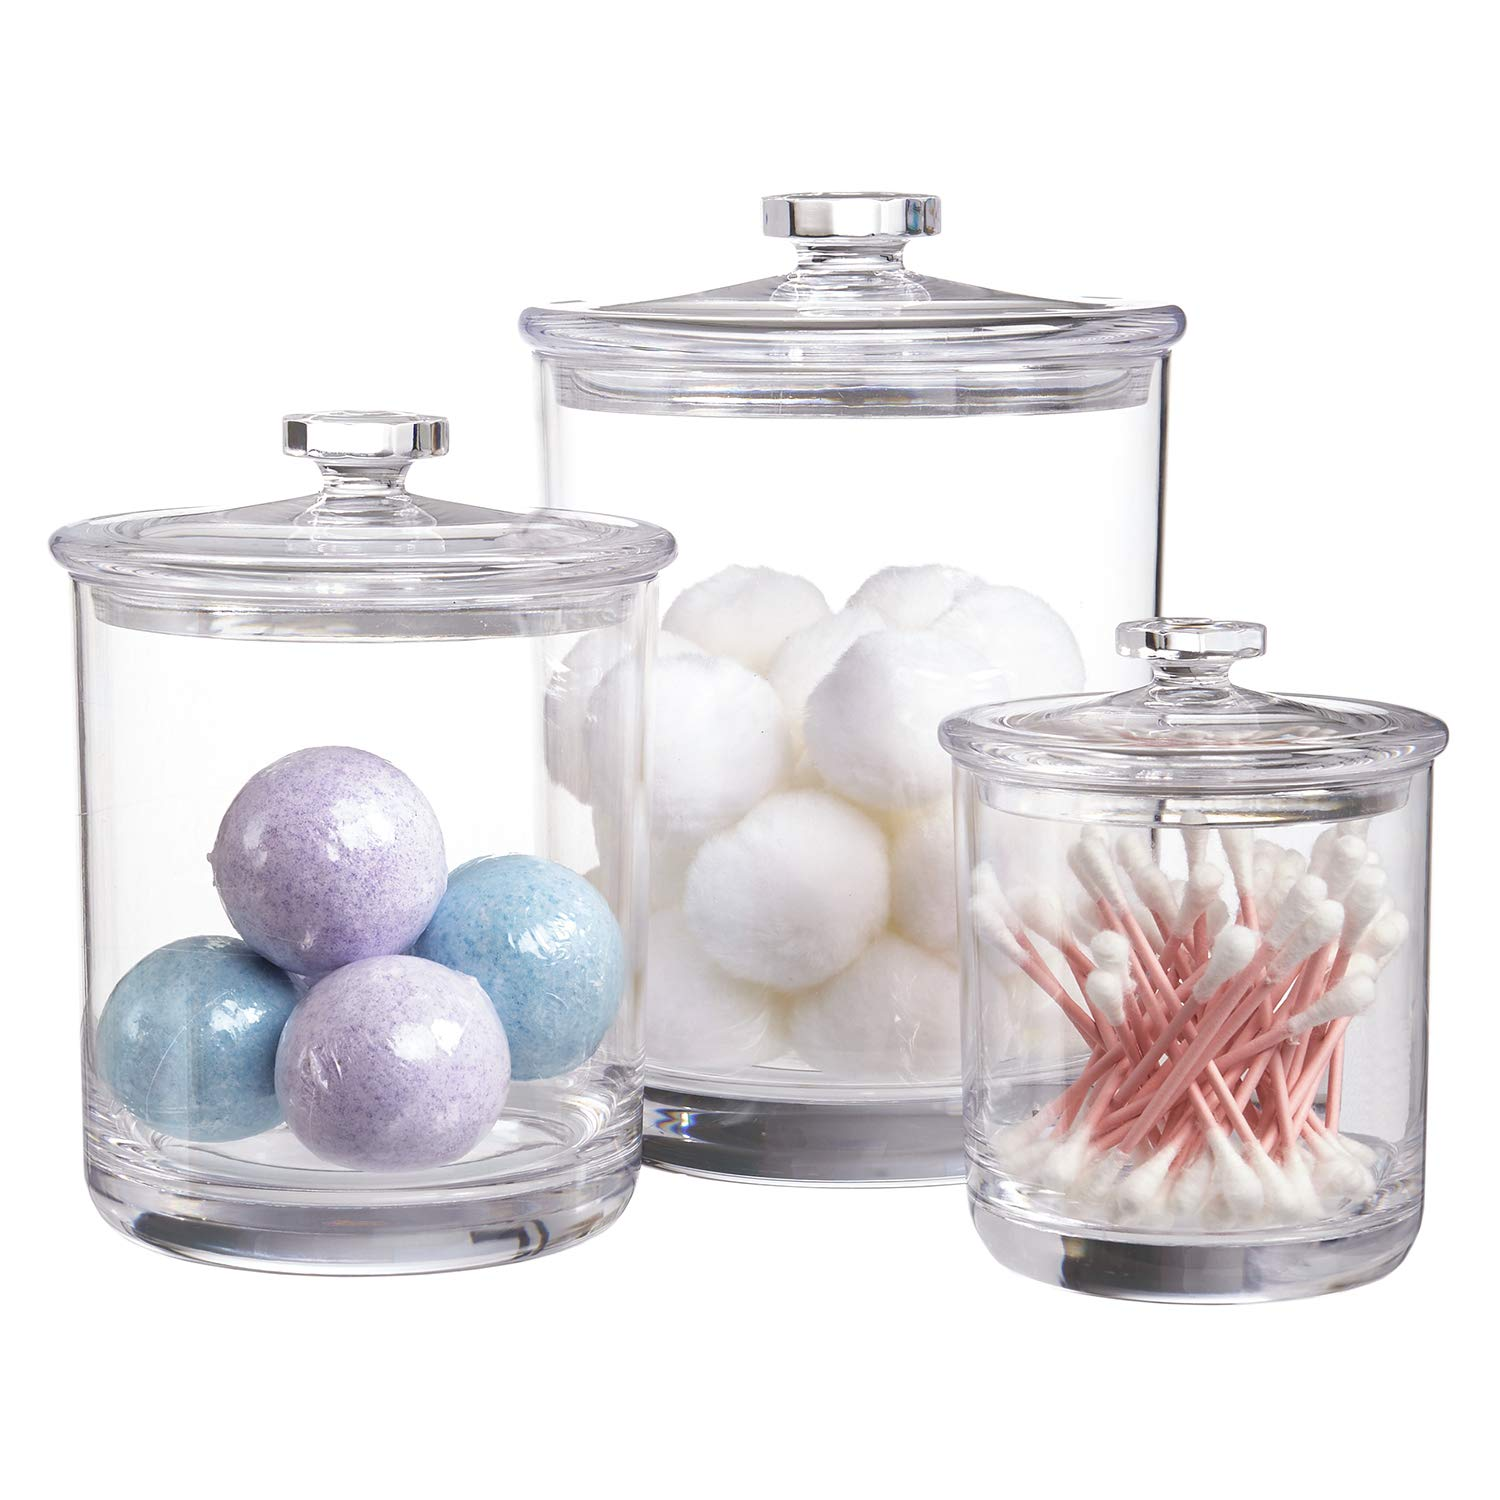 STORi Premium Quality Clear Plastic Apothecary Jars | Set of 3 by STORi